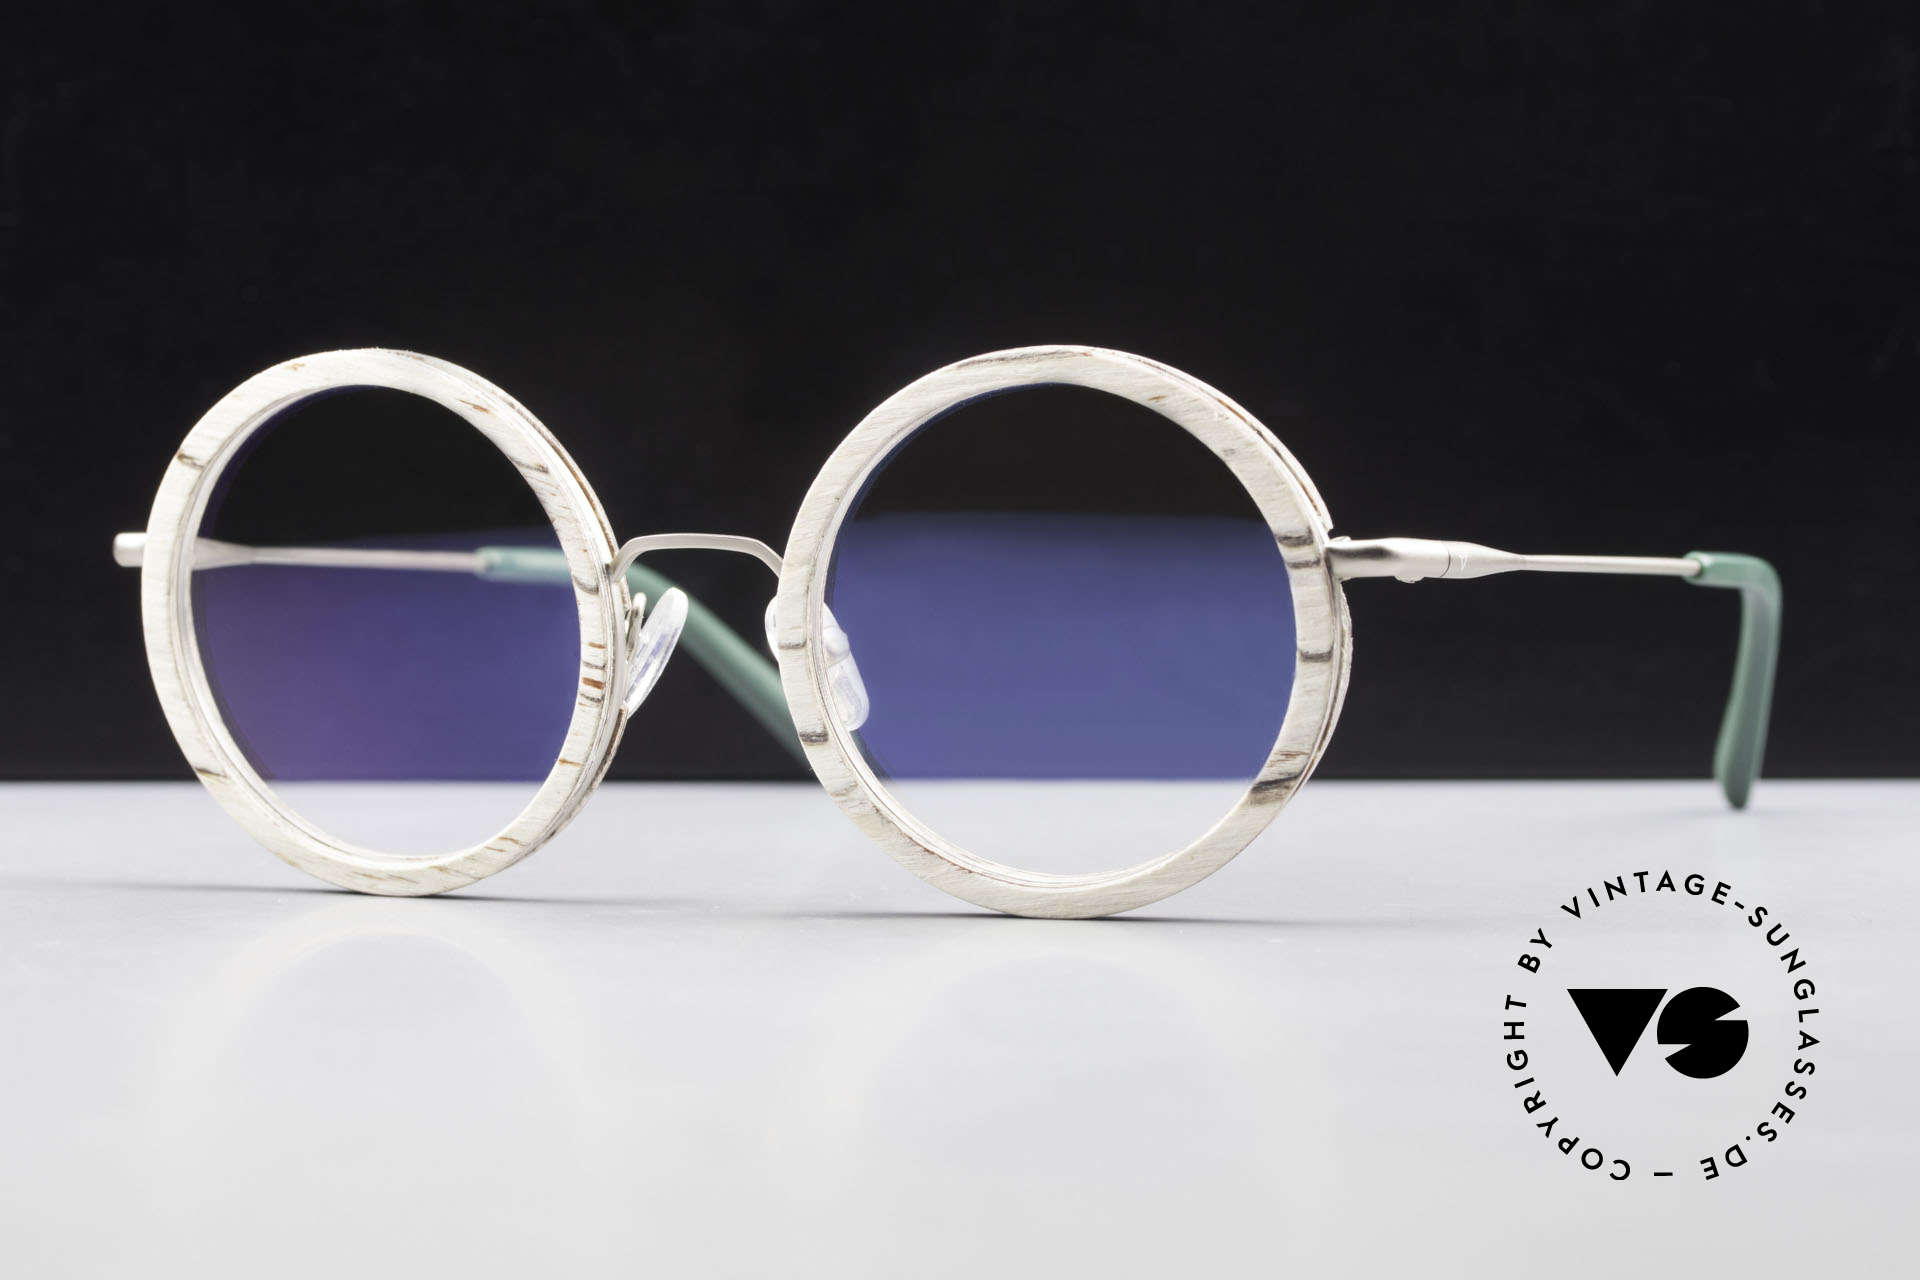 Kerbholz Rudolph Round Wood Frame White Birch, round WOOD glasses by Kerbholz, made in Germany, Made for Men and Women